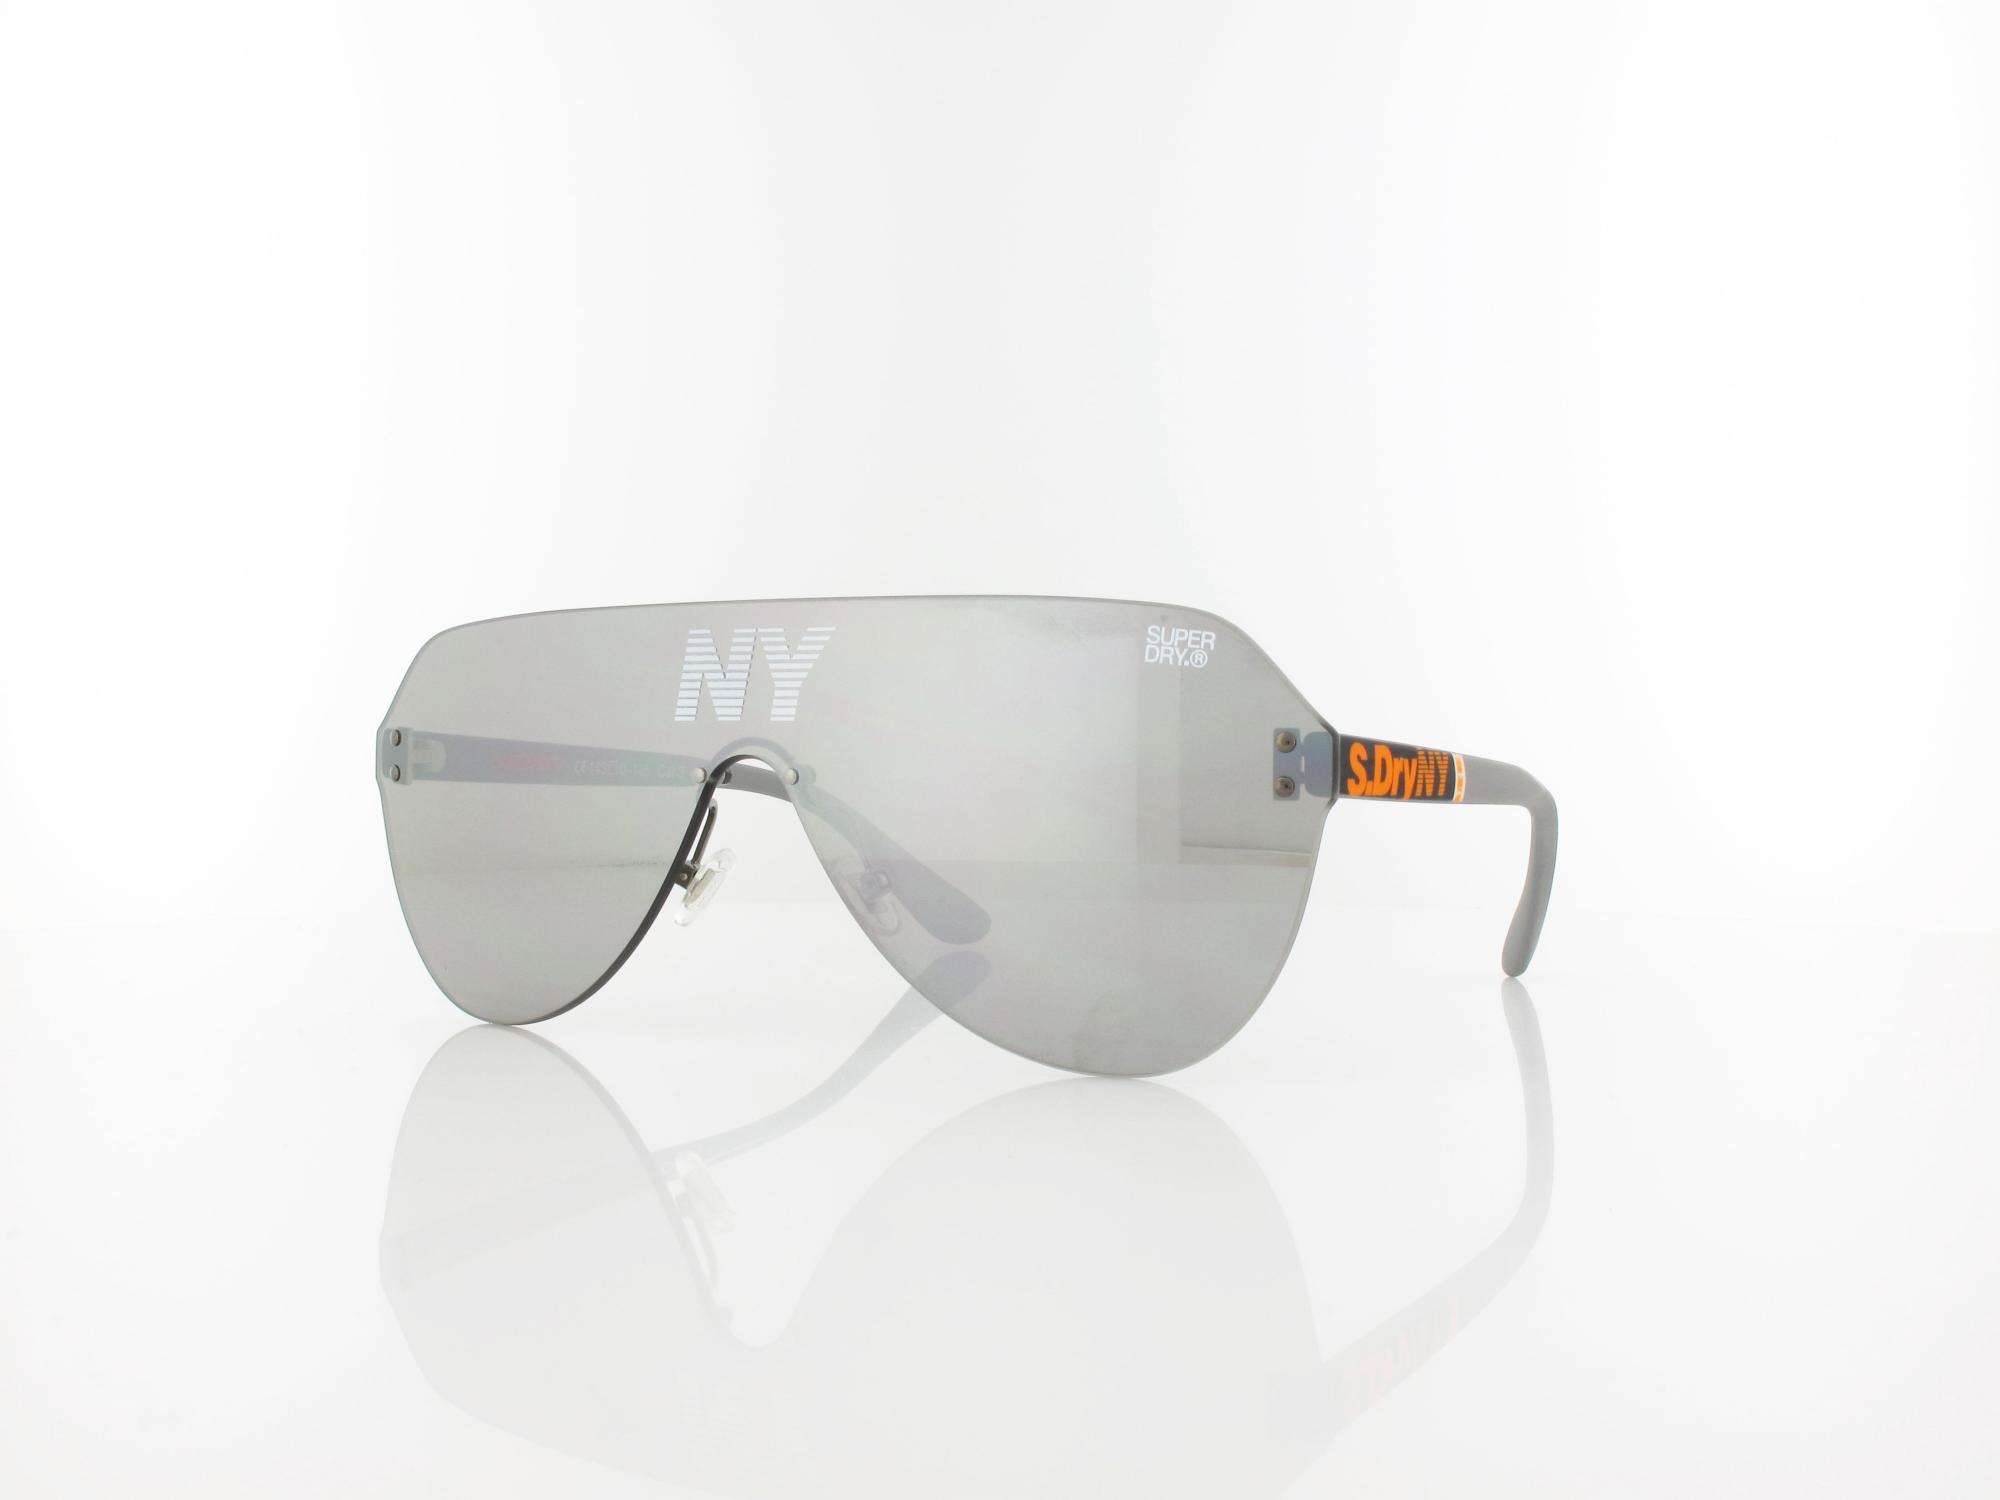 Superdry | Monovector 108 143 | rubberised grey orange / silver mirror